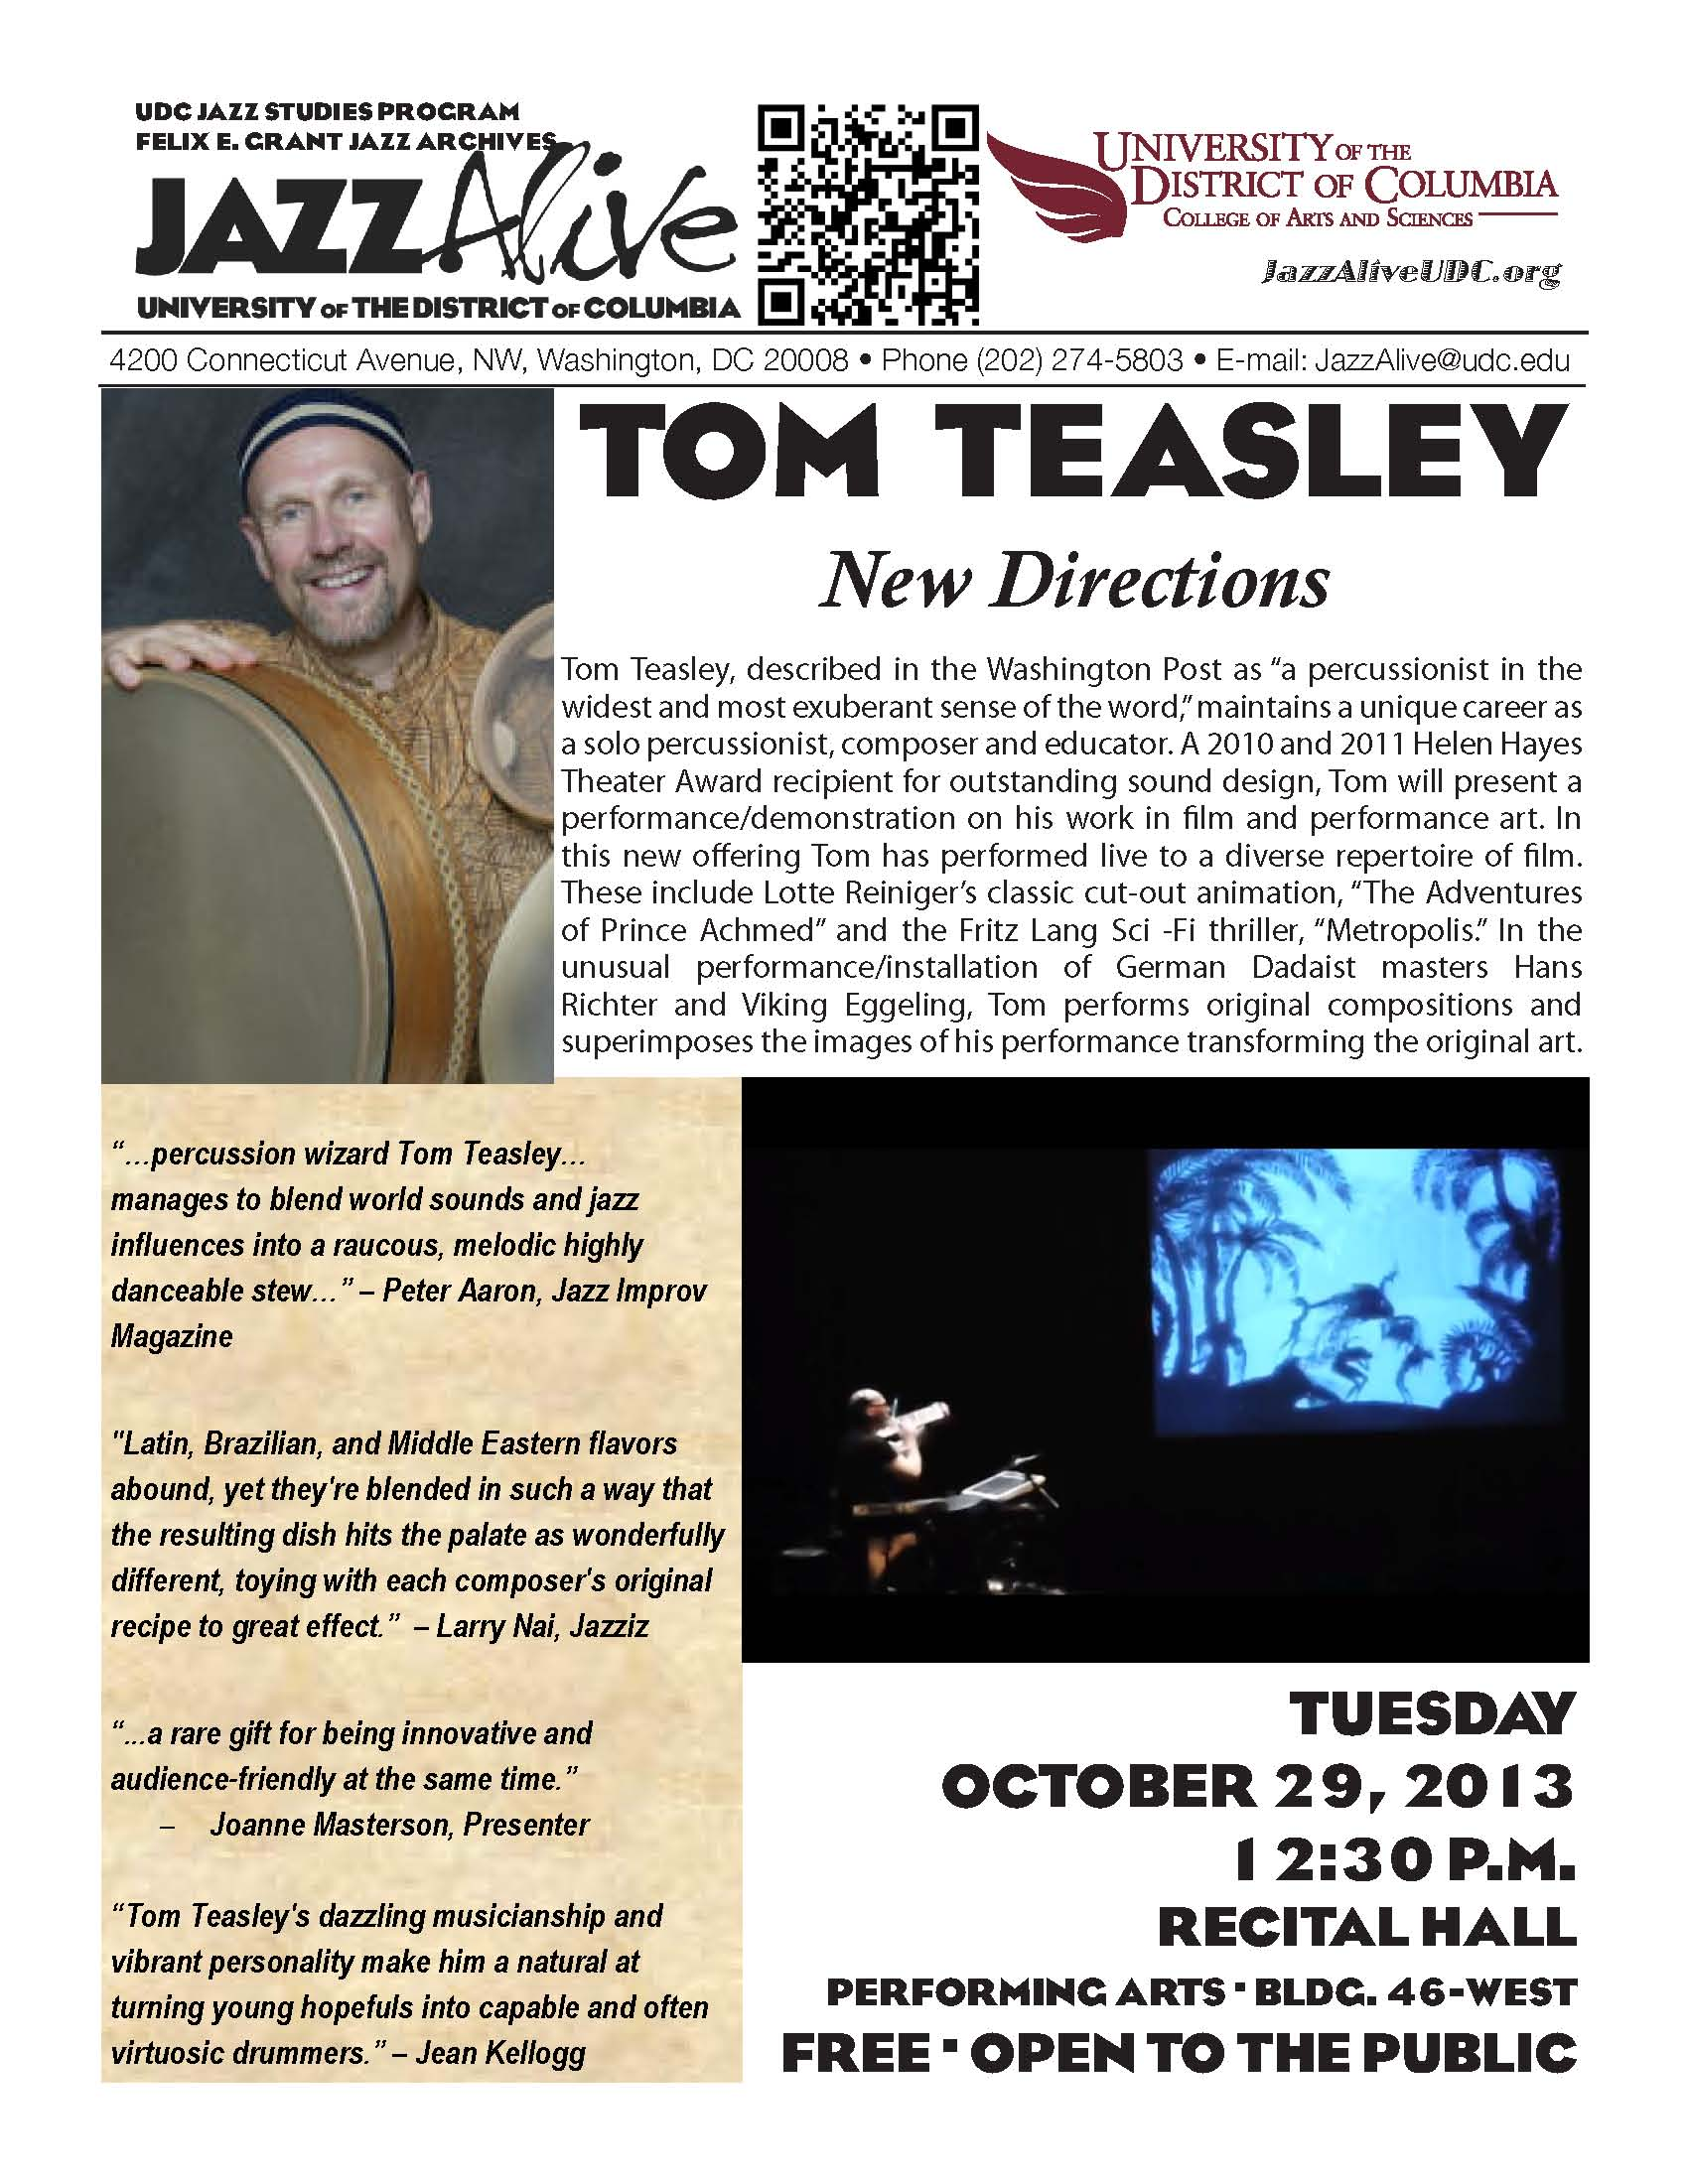 Tom teasley - new directions